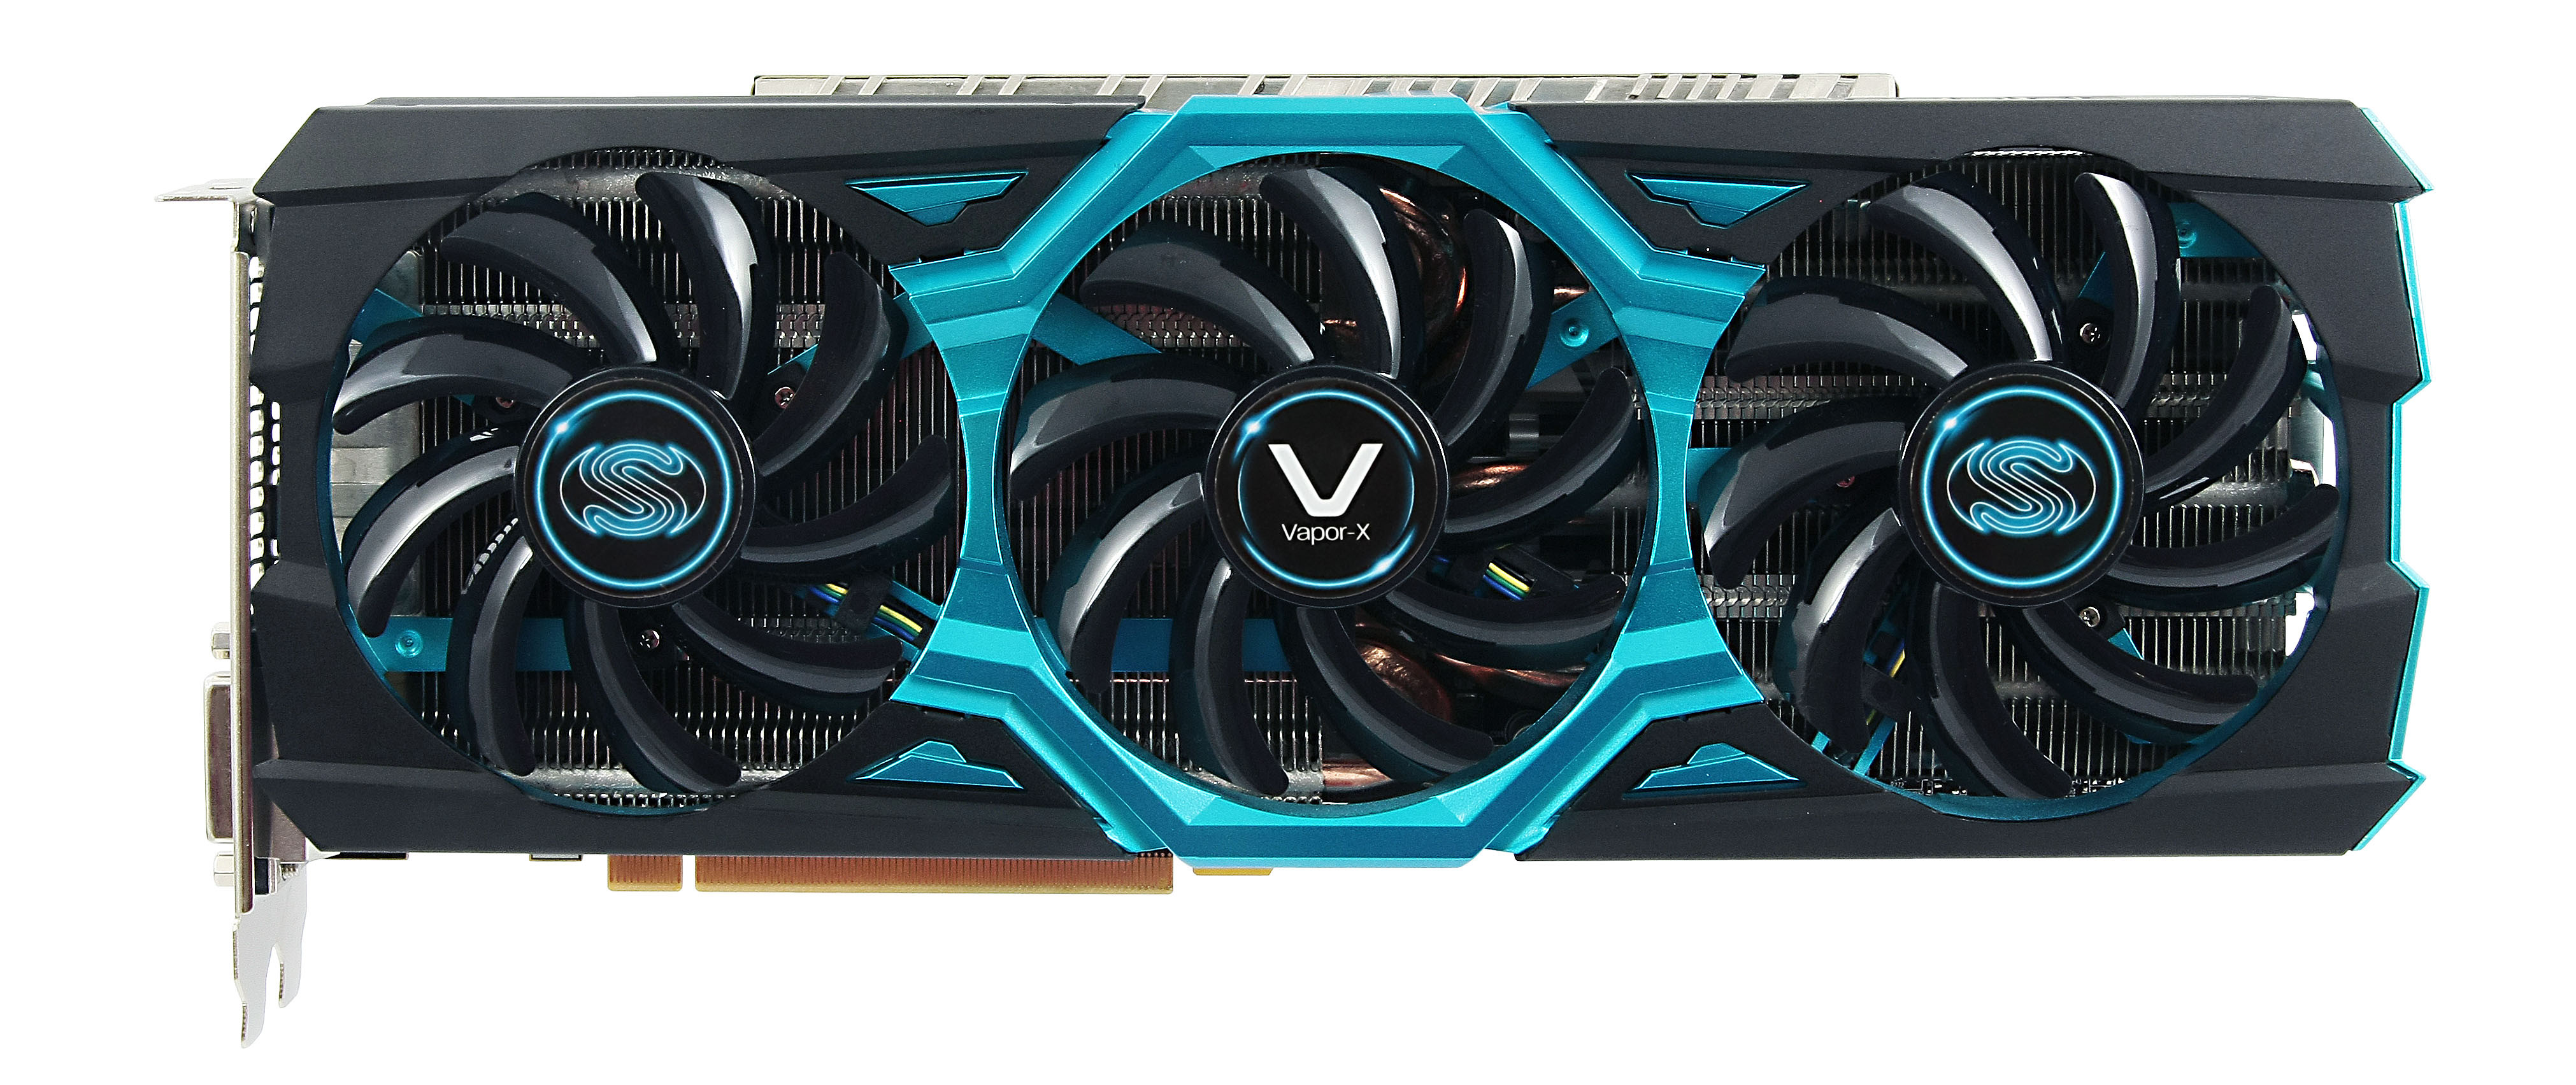 Sapphire Ships Radeon R9 290x Vaporx With 8gb Techpowerup Ac Fan Speed Control Circuit Http Wwwtechpowerupcom Forums Together These Clocks Deliver Industry Leading Performance But To Achieve This Stability And Reliability Demands High Quality Components